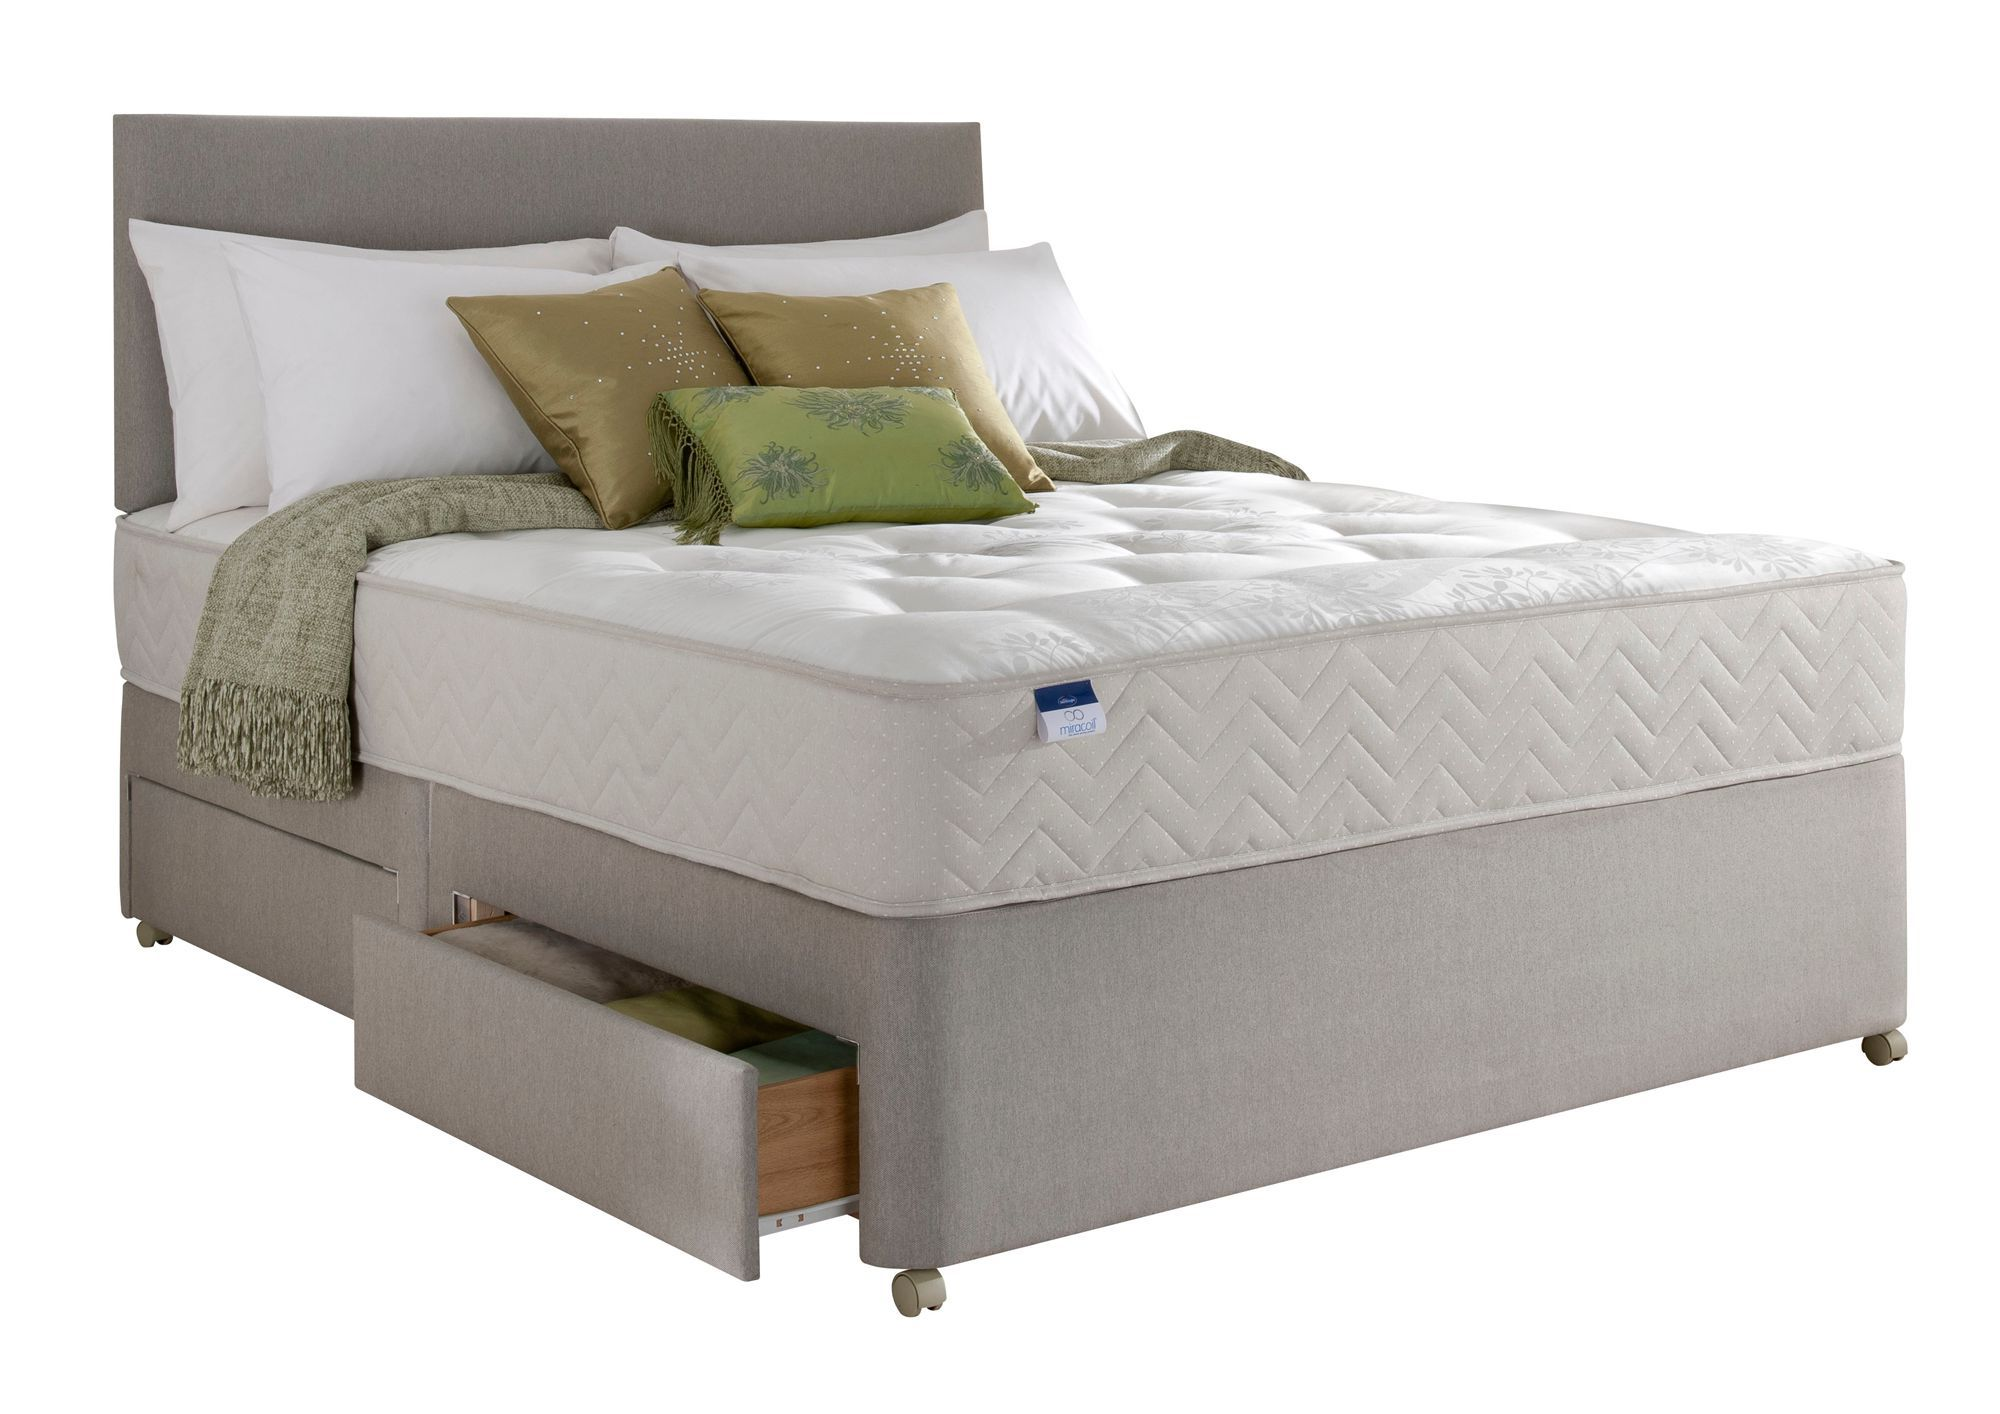 Silentnight Miracoil Tufted Ortho King Size 2 Drawer